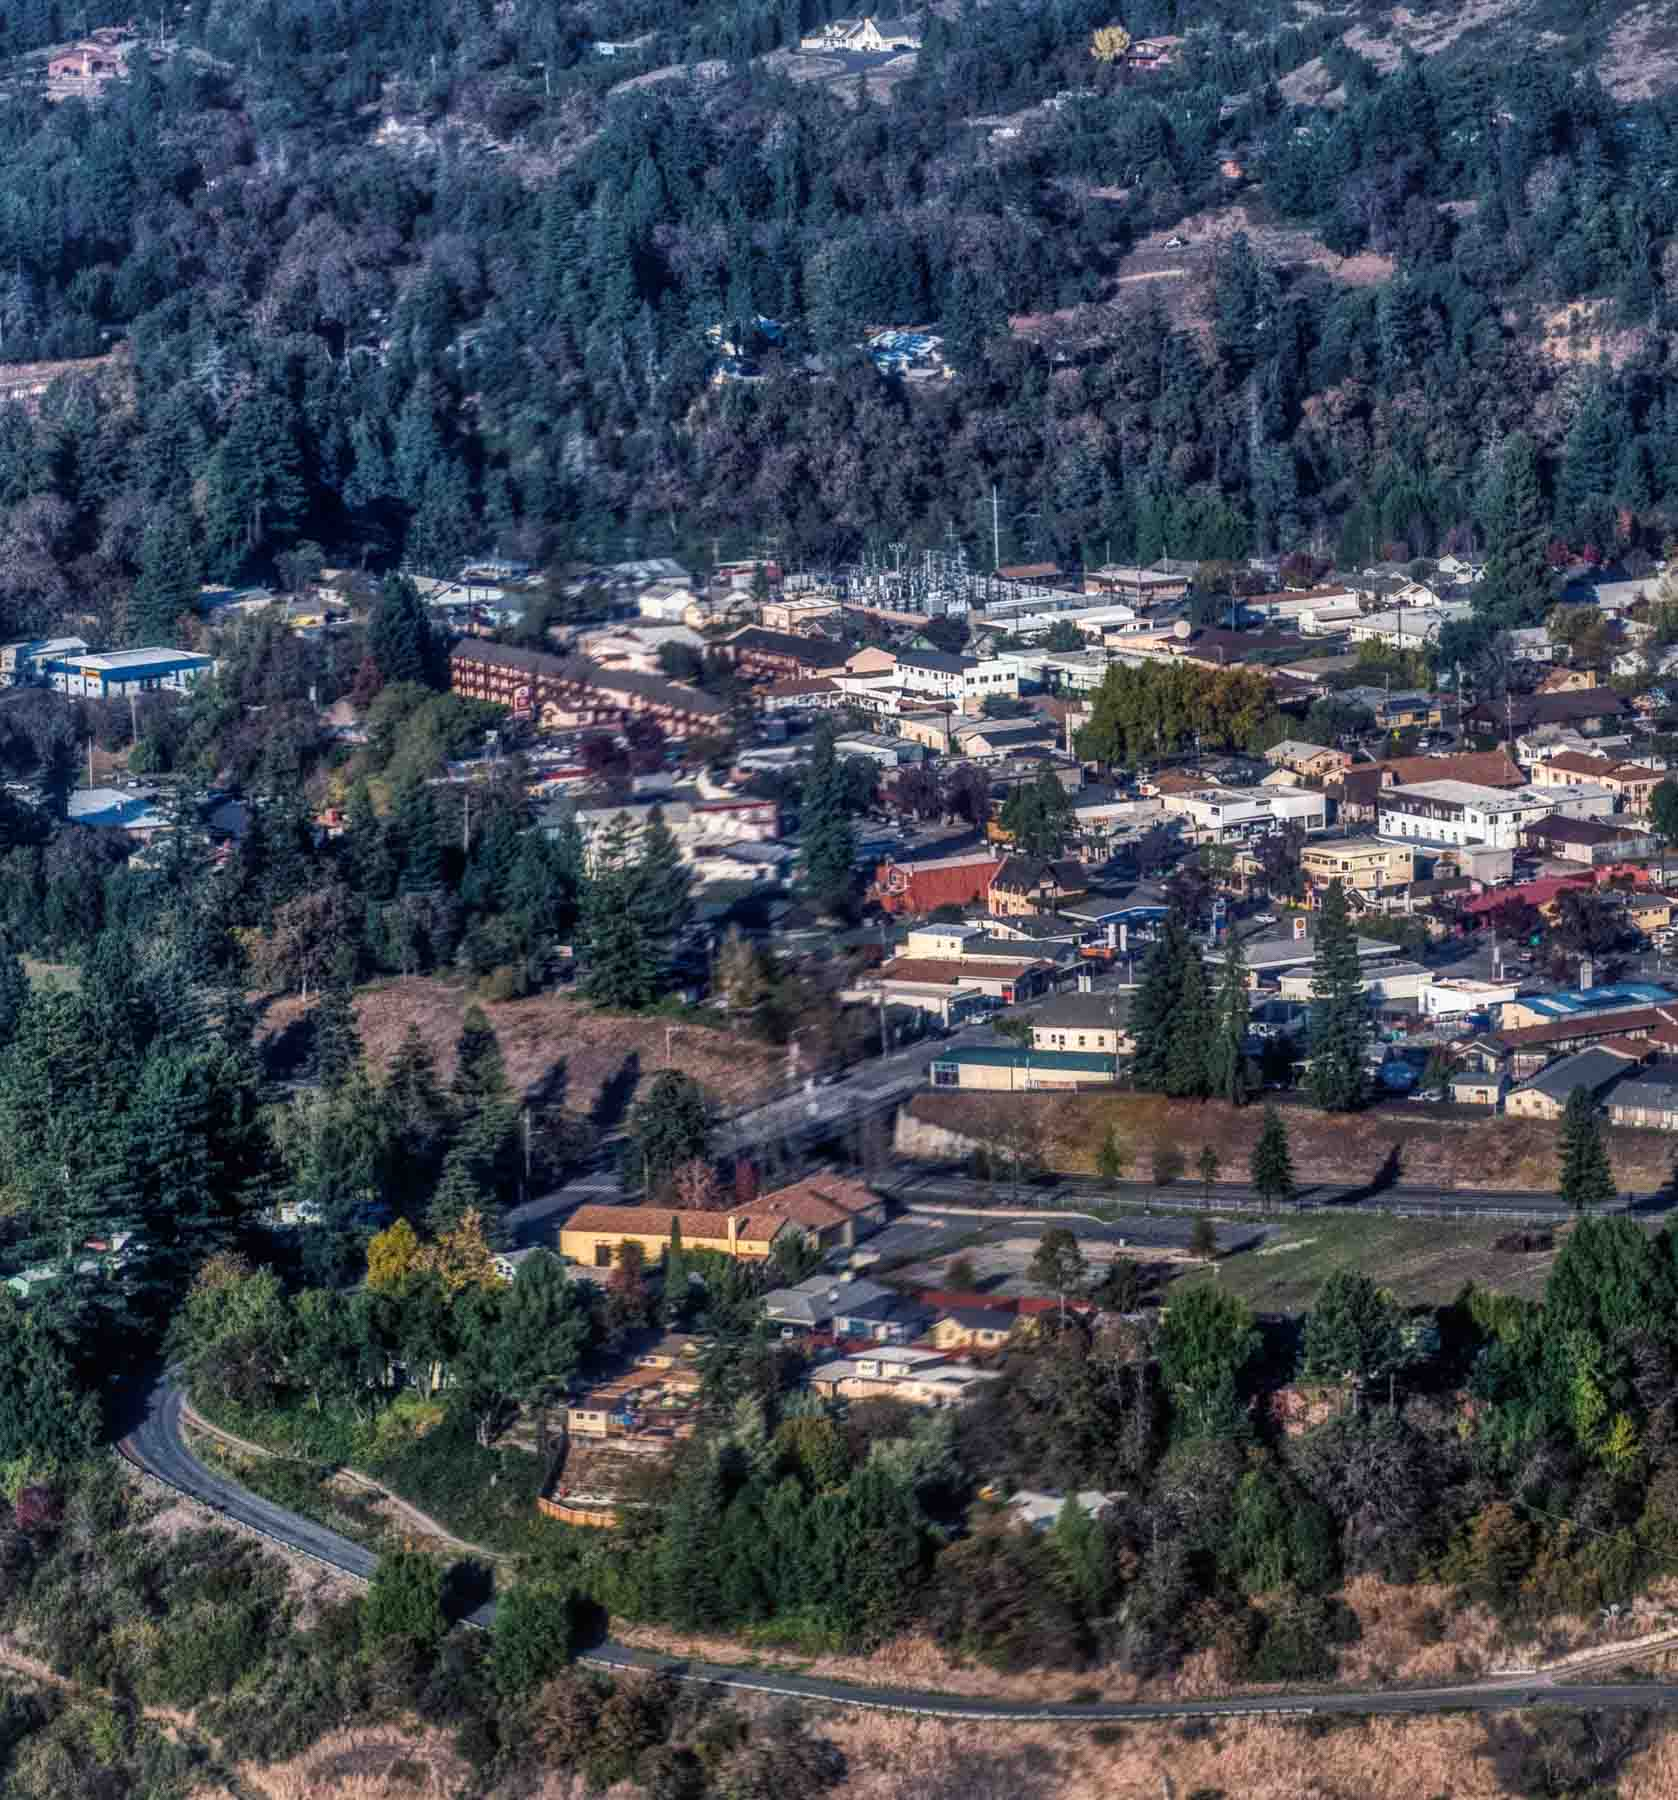 The town of Garberville, CA   <i>by Kim Sallaway</i>